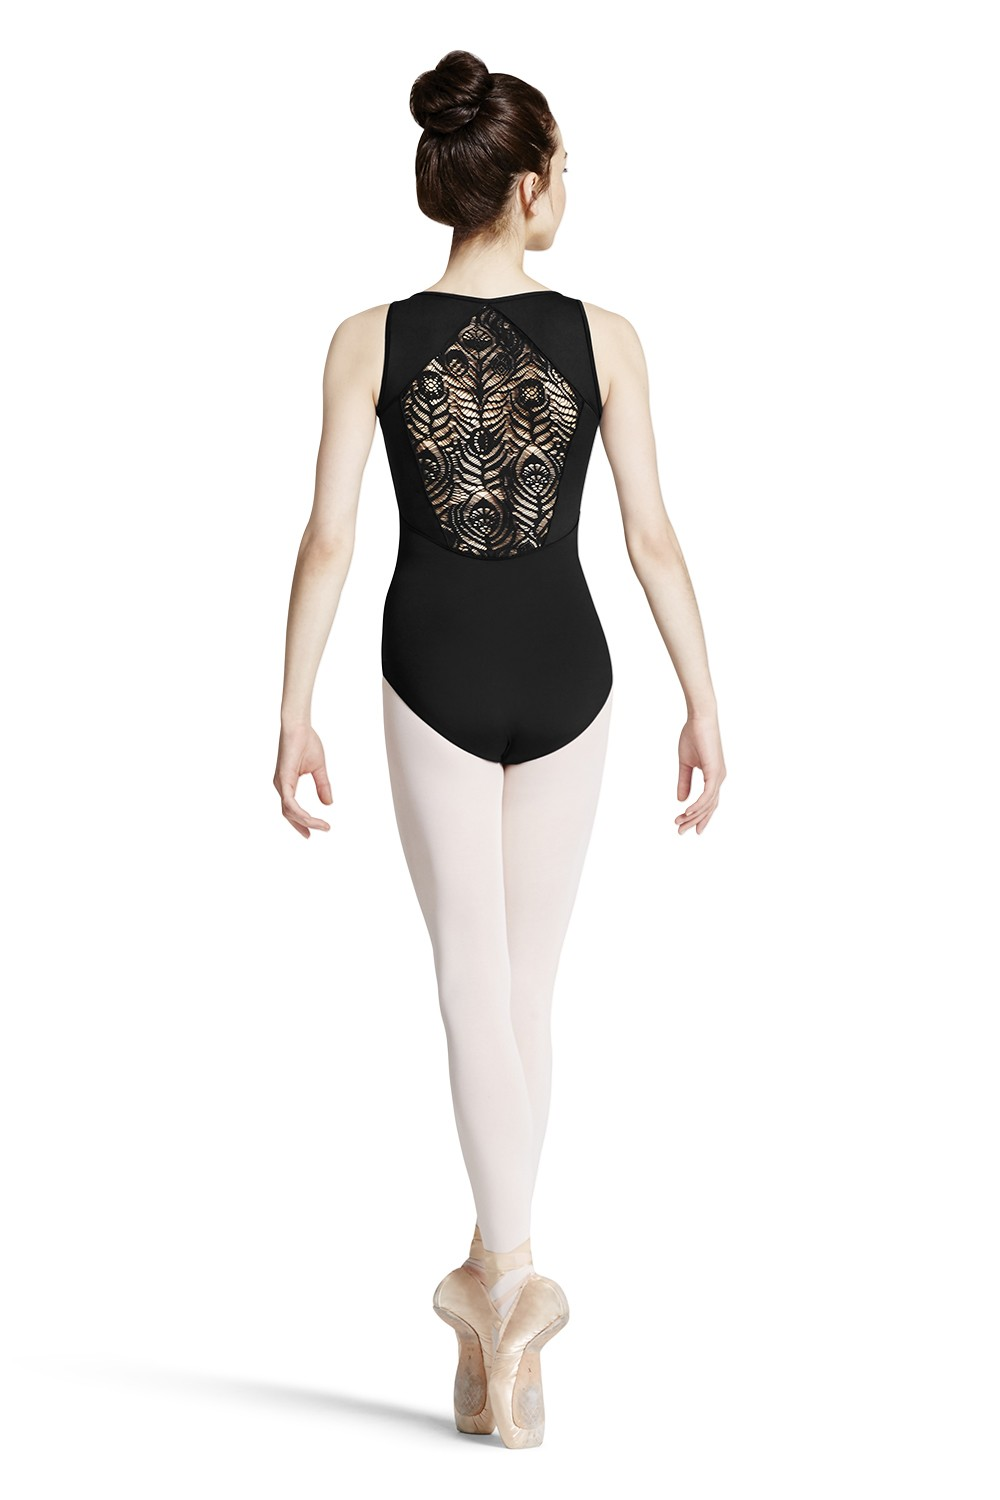 Justaucorps Sans Manches, Dos Plumes De Paon Womens Tank Leotards